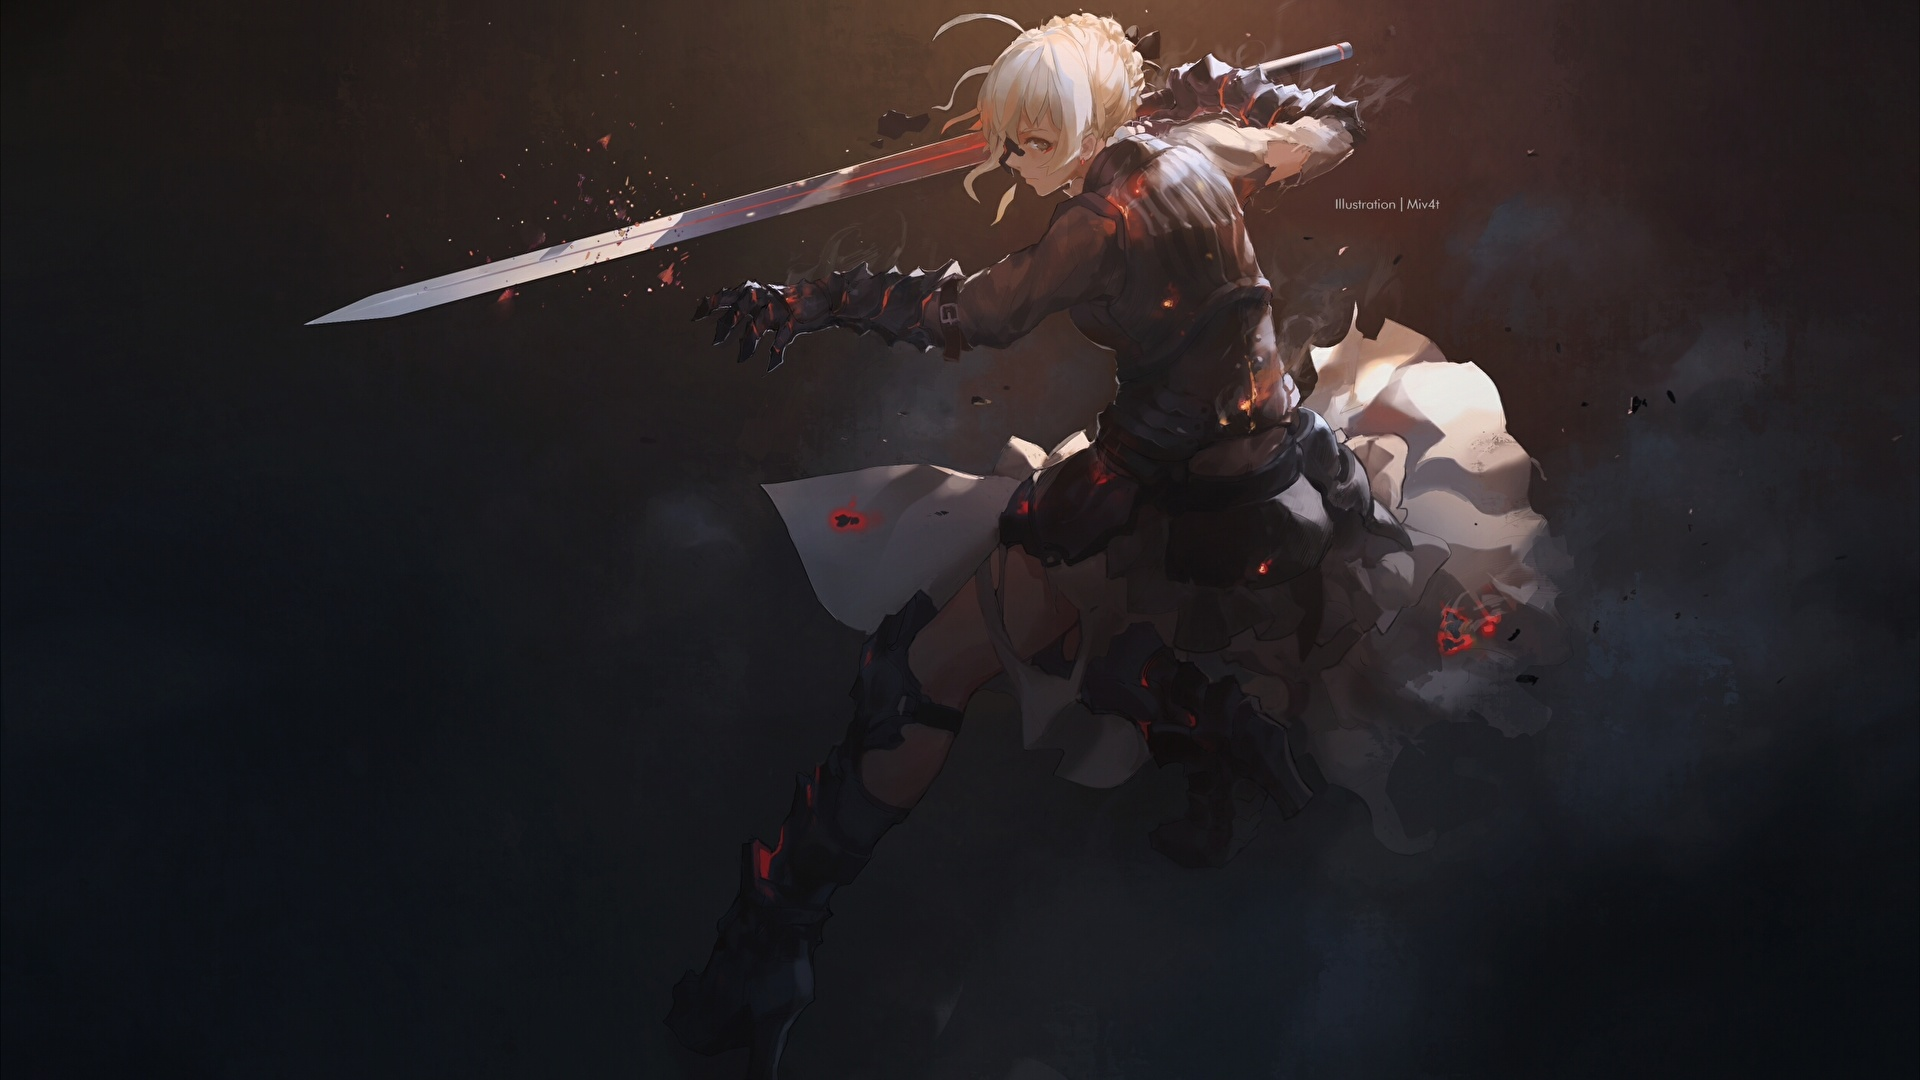 Photo Fate Stay Night Swords Blonde Girl Warriors Saber 1920x1080